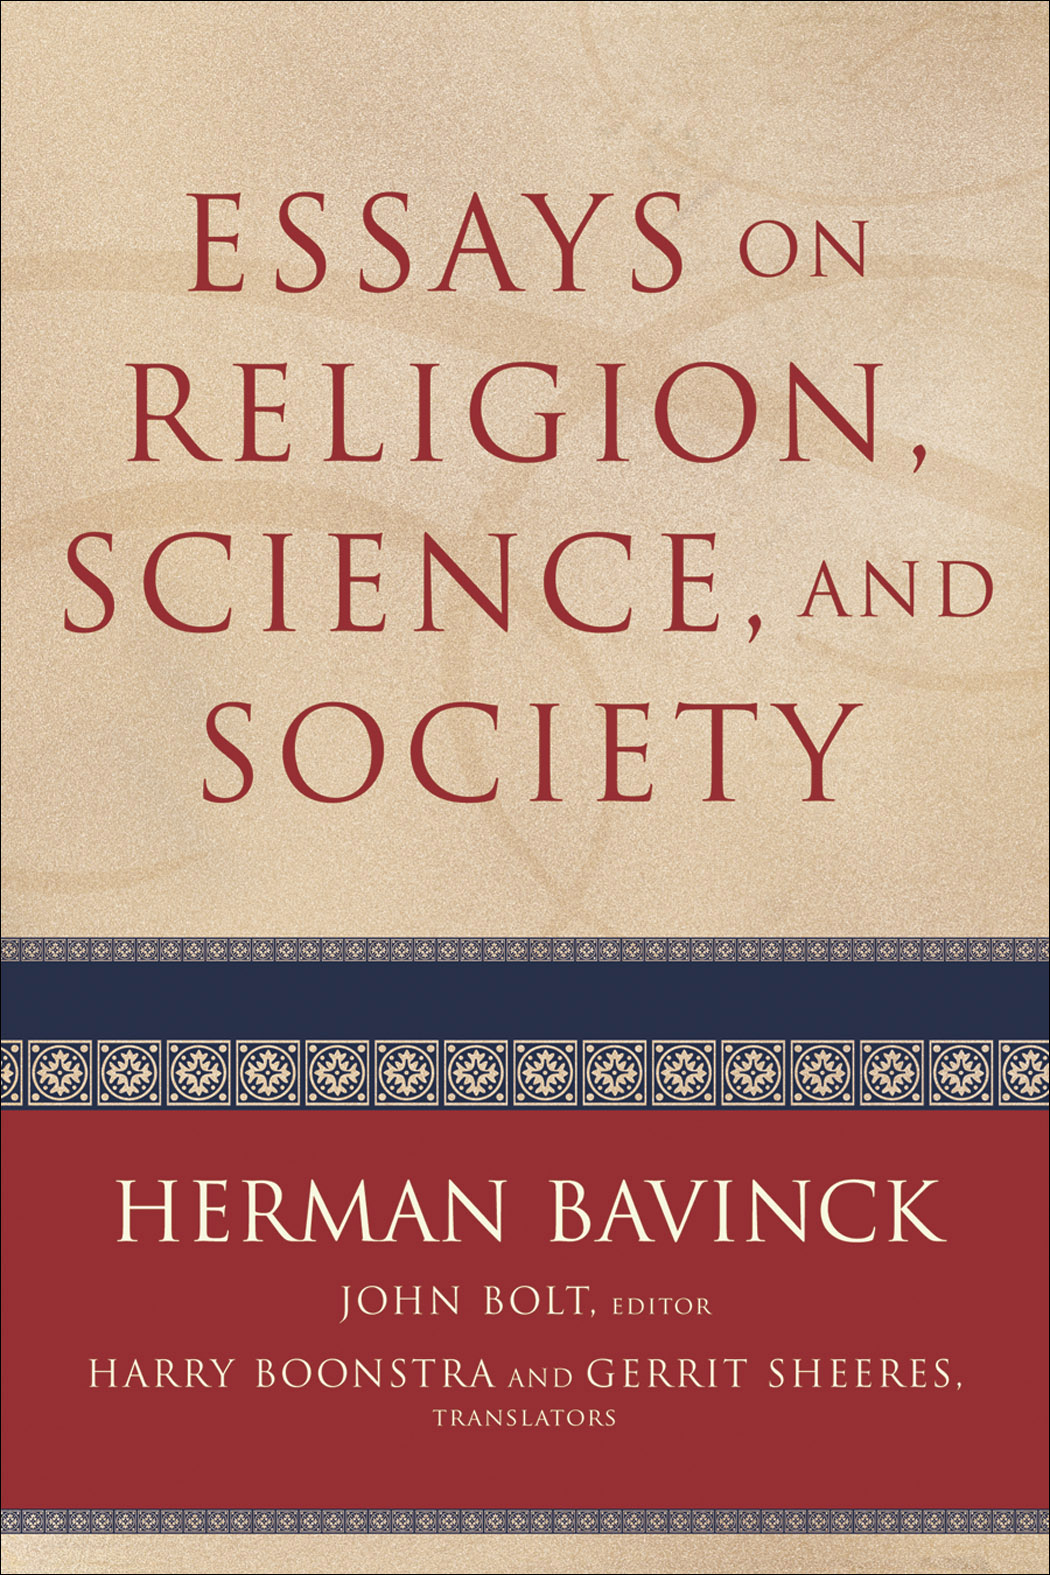 Essays On Religion Science And Society  Baker Publishing Group Essays On Religion Science And Society